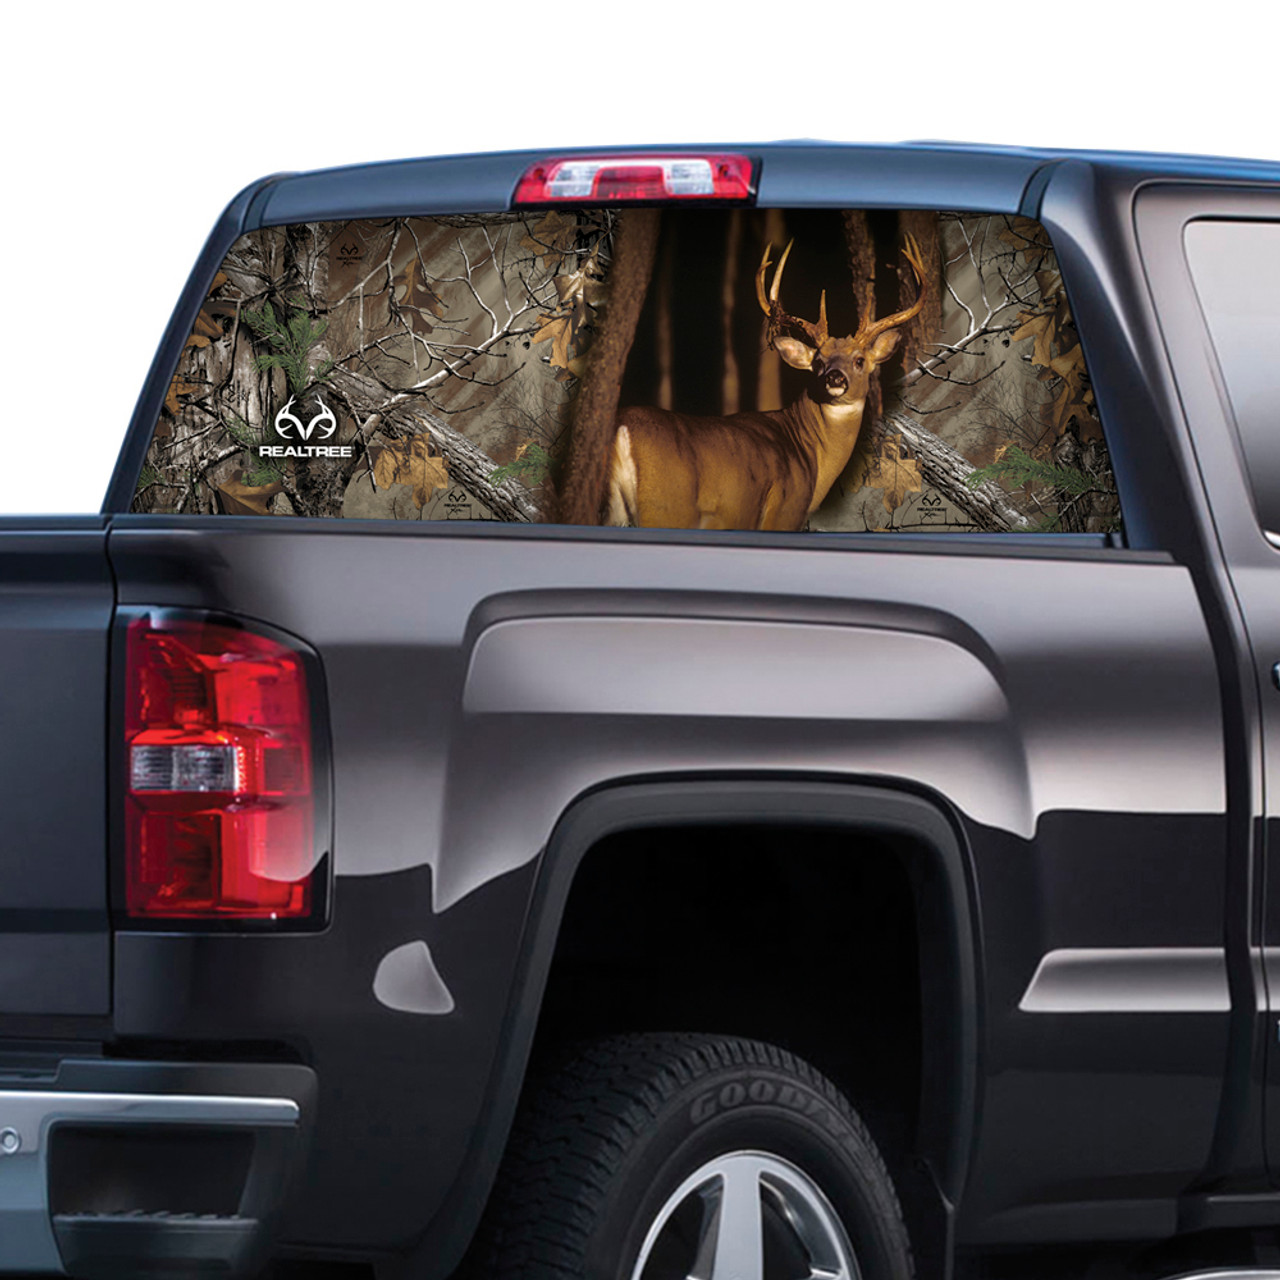 CAMO CAMOUFLAGE PICKUP TRUCK BACK WINDOW GRAPHIC DECAL TINT HUNTING CAMO